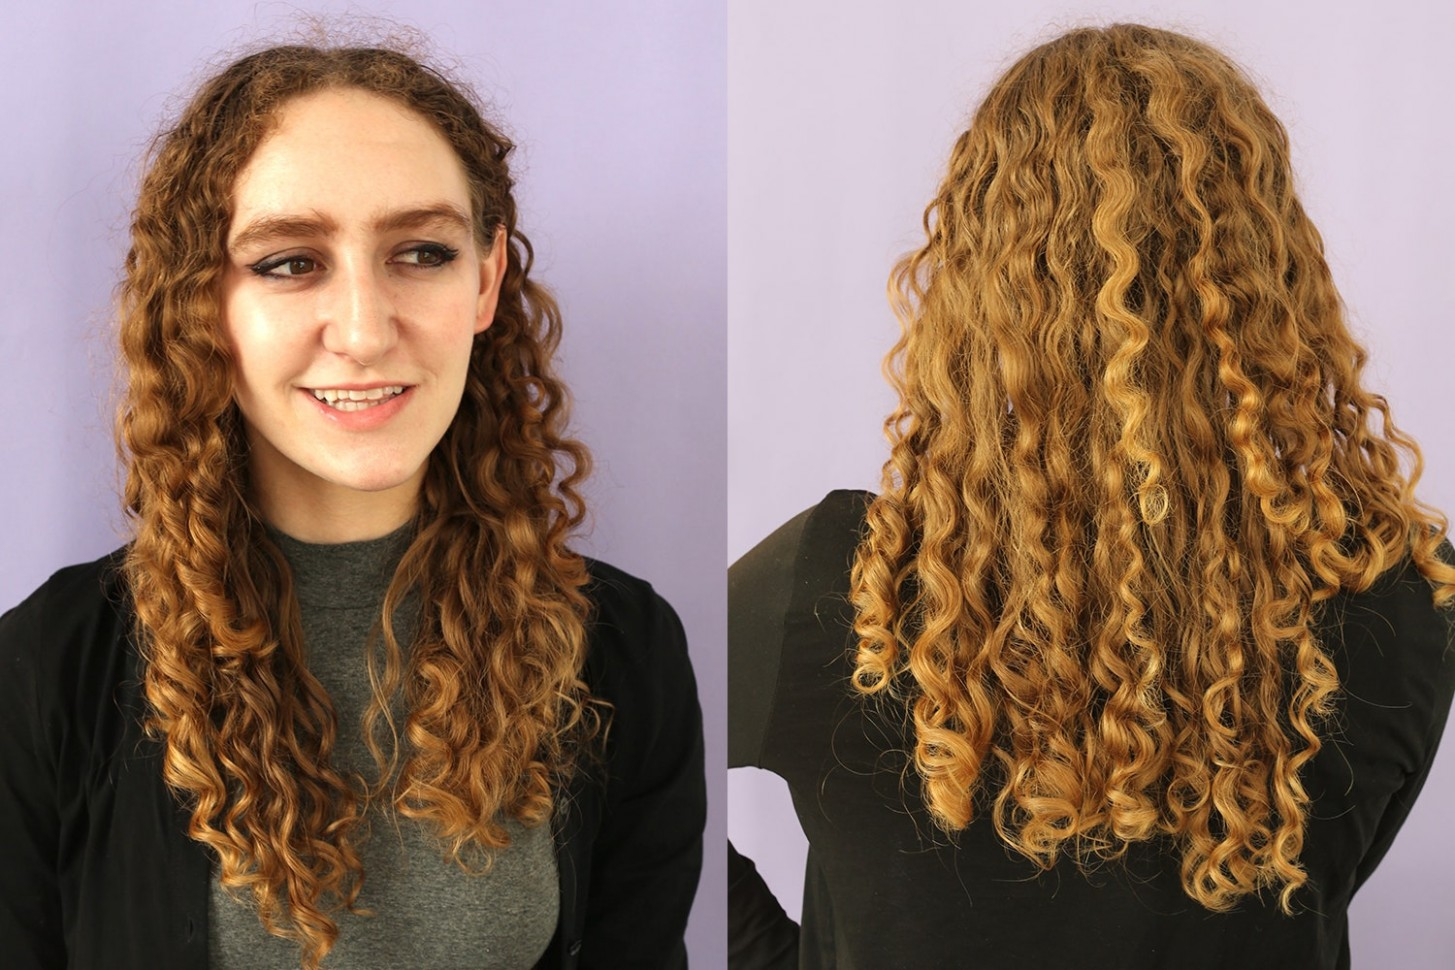 I Tried the Best Curly-Hair Routines From Reddit—Here's What